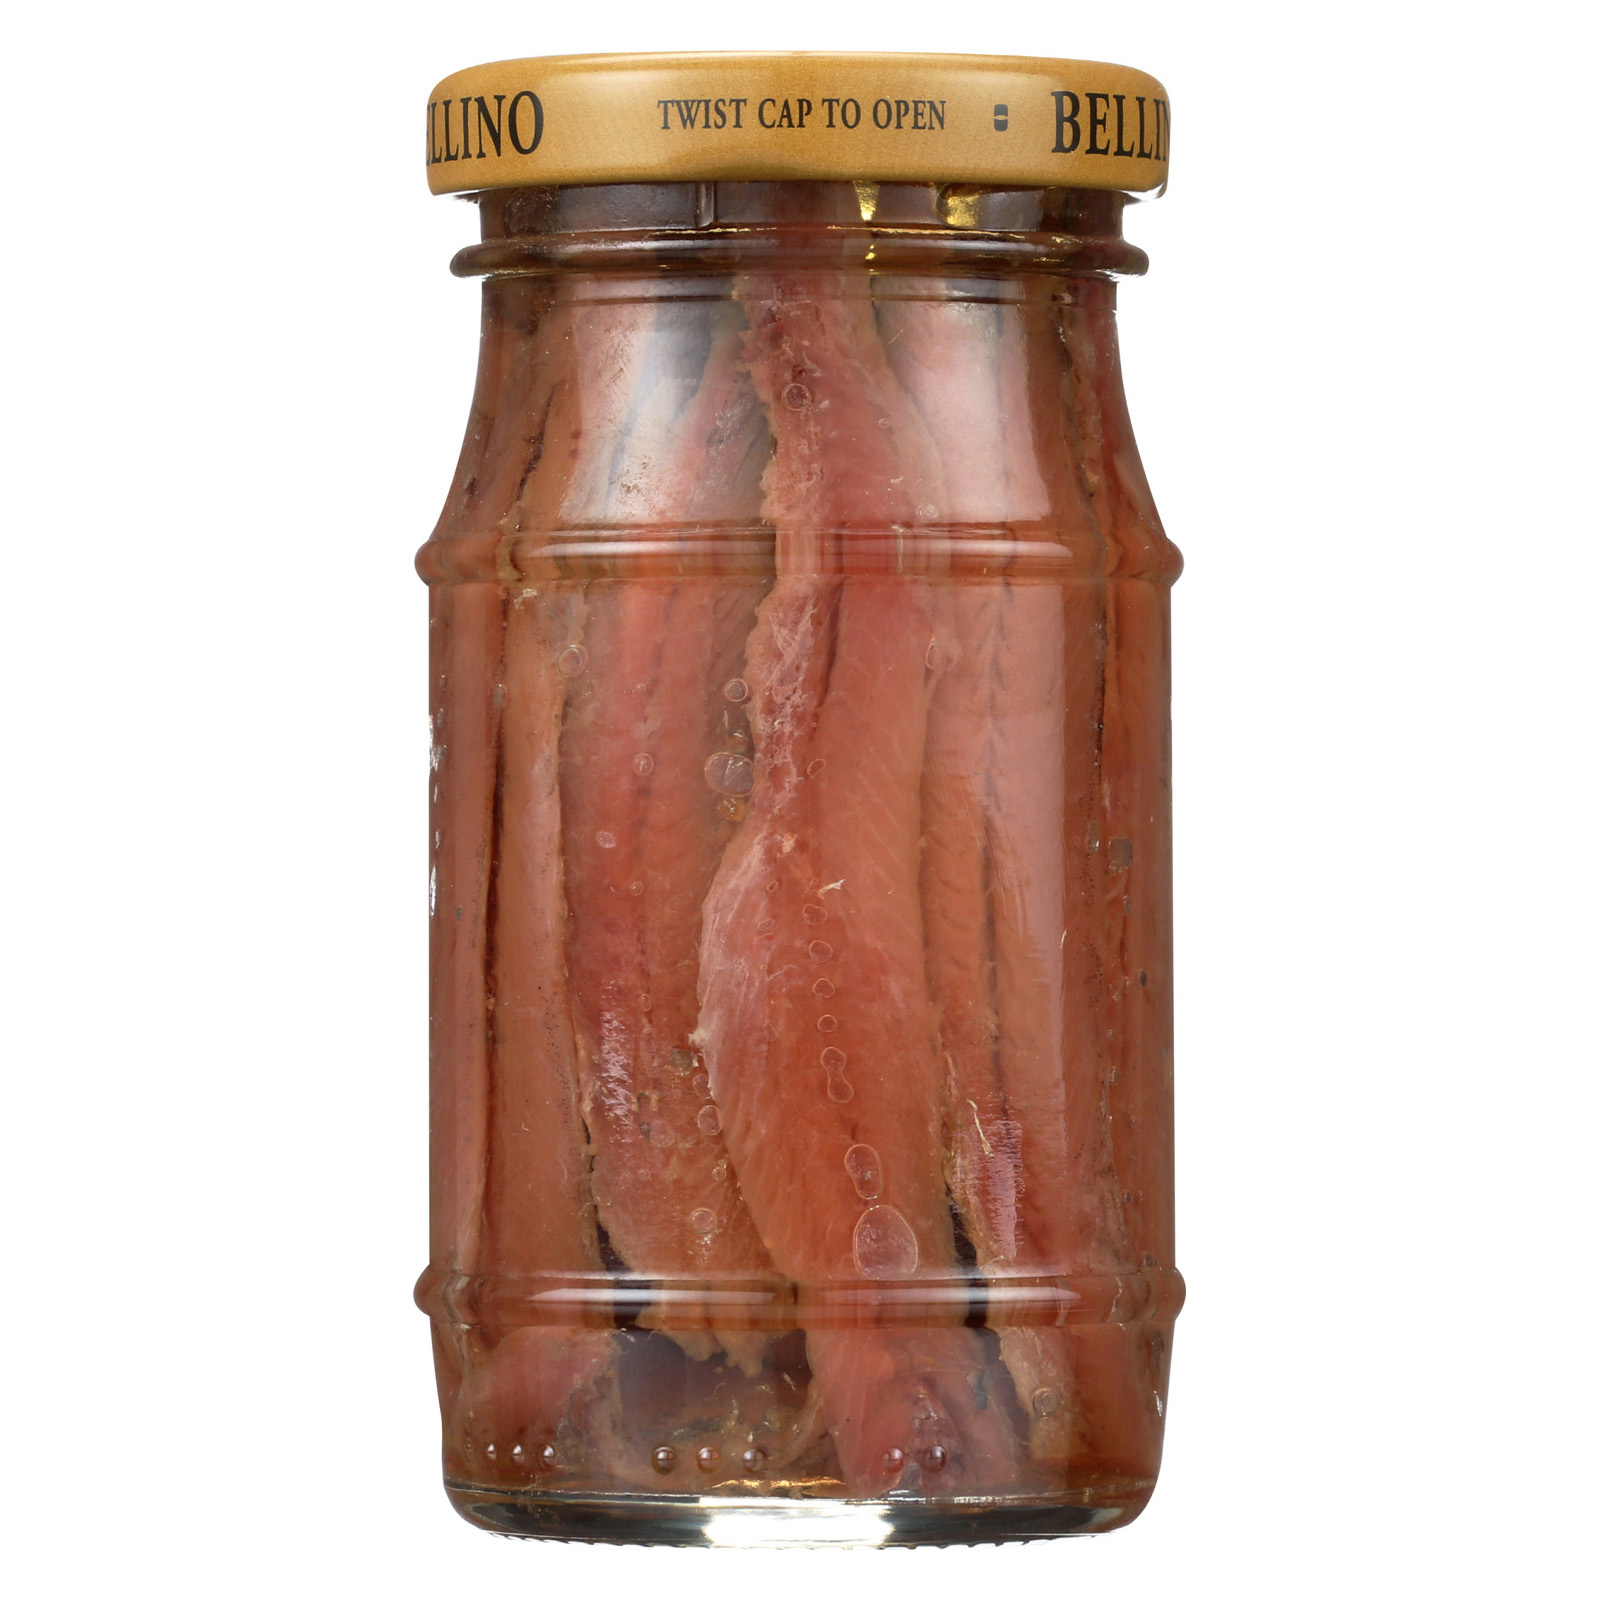 Bellino Anchovies - Oil - Flat - Case of 12 - 4.25 oz